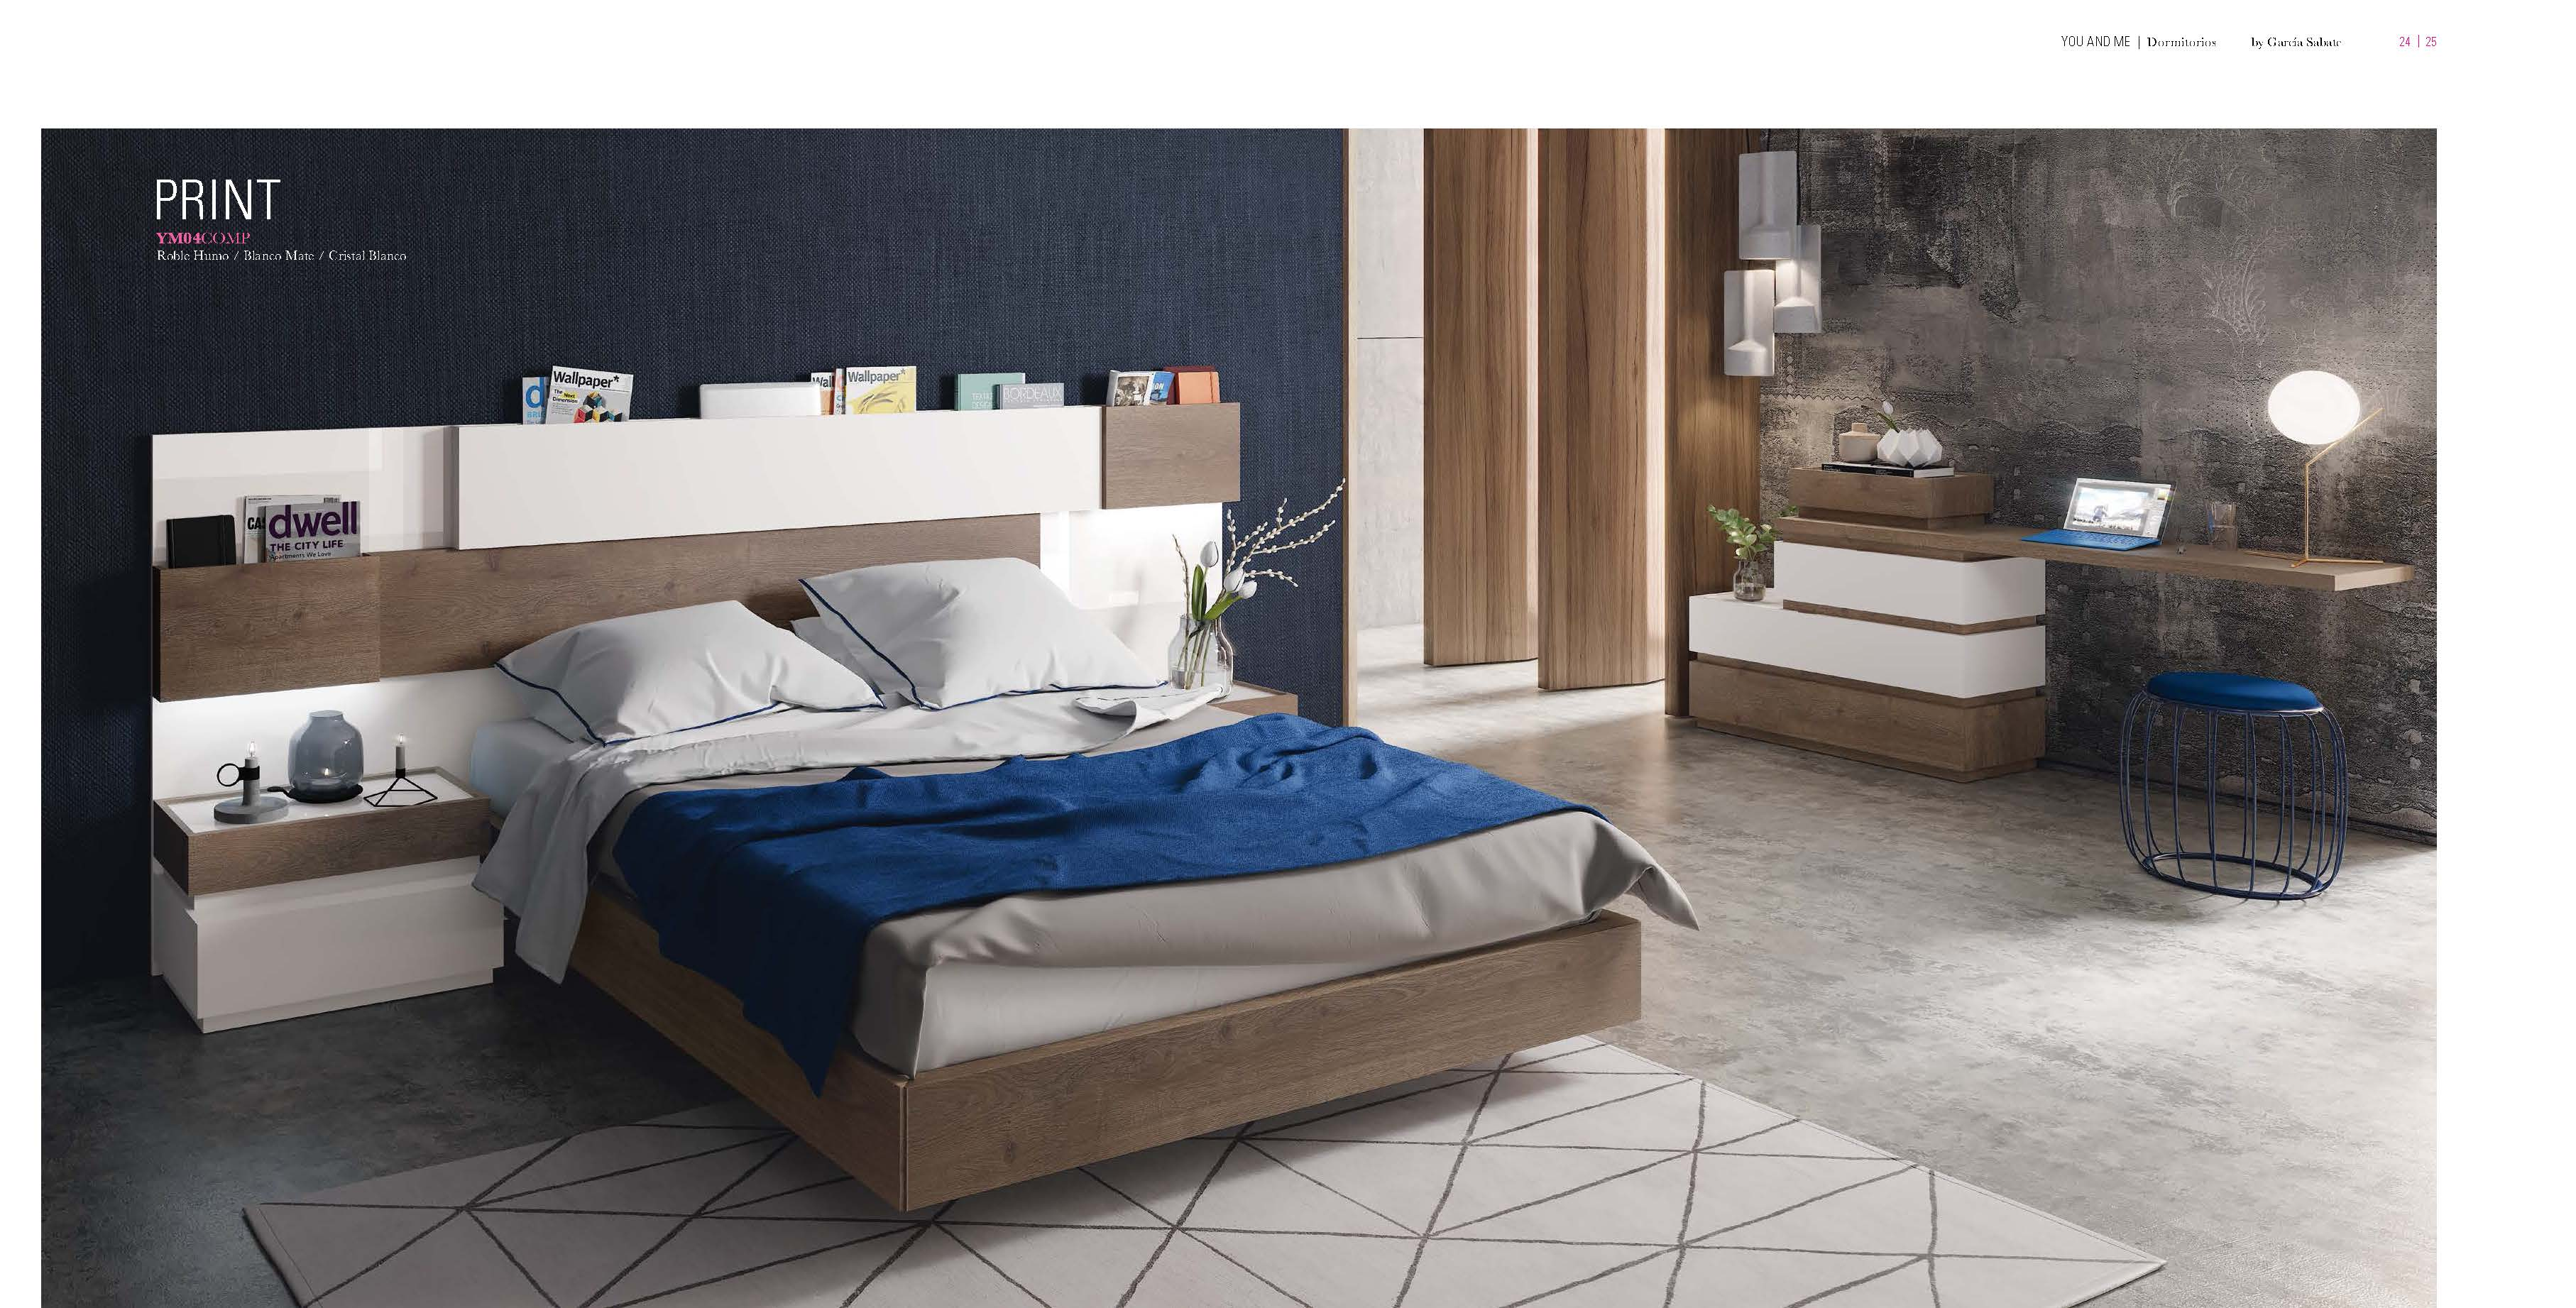 Brands Garcia Sabate, Modern Bedroom Spain YM04